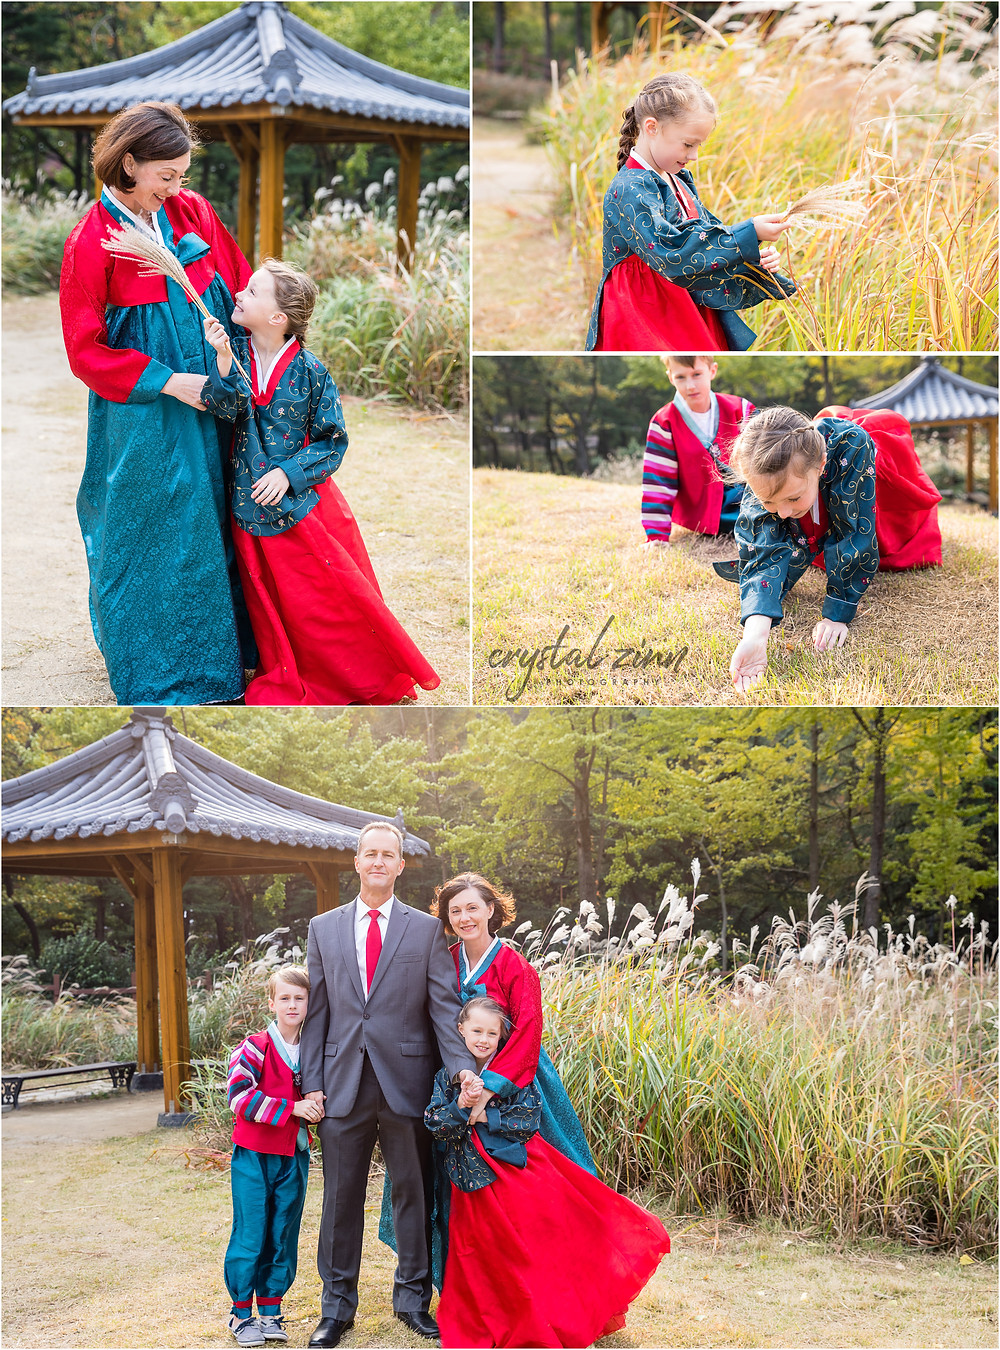 family portrait session in Daegu, South Korea, young girl, outside, mother, young boy, father